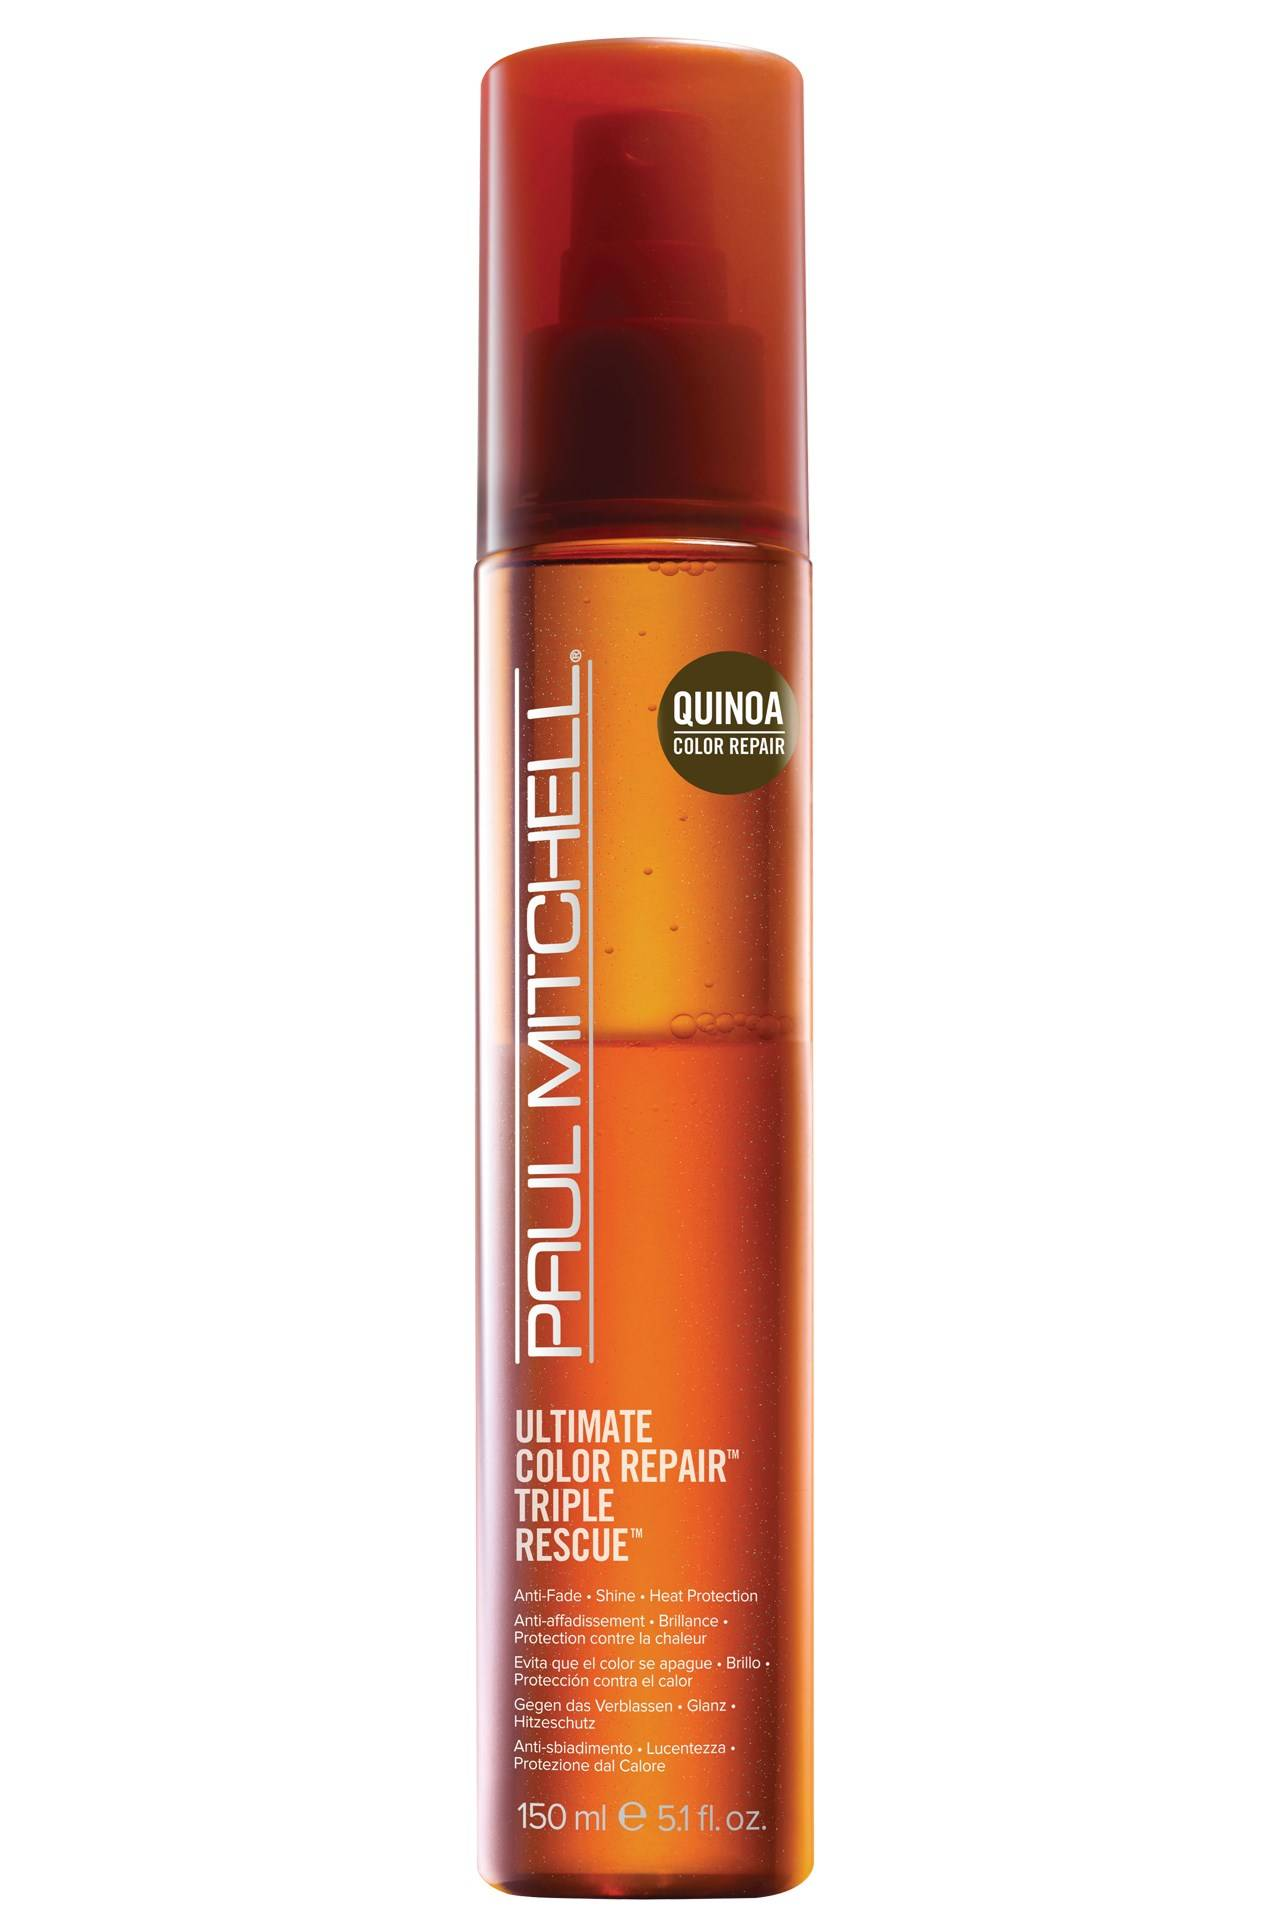 Aromatherapy Golden Touch Pure Aromatherapy Hair And Scalp Oil 150ml A Great Variety Of Models